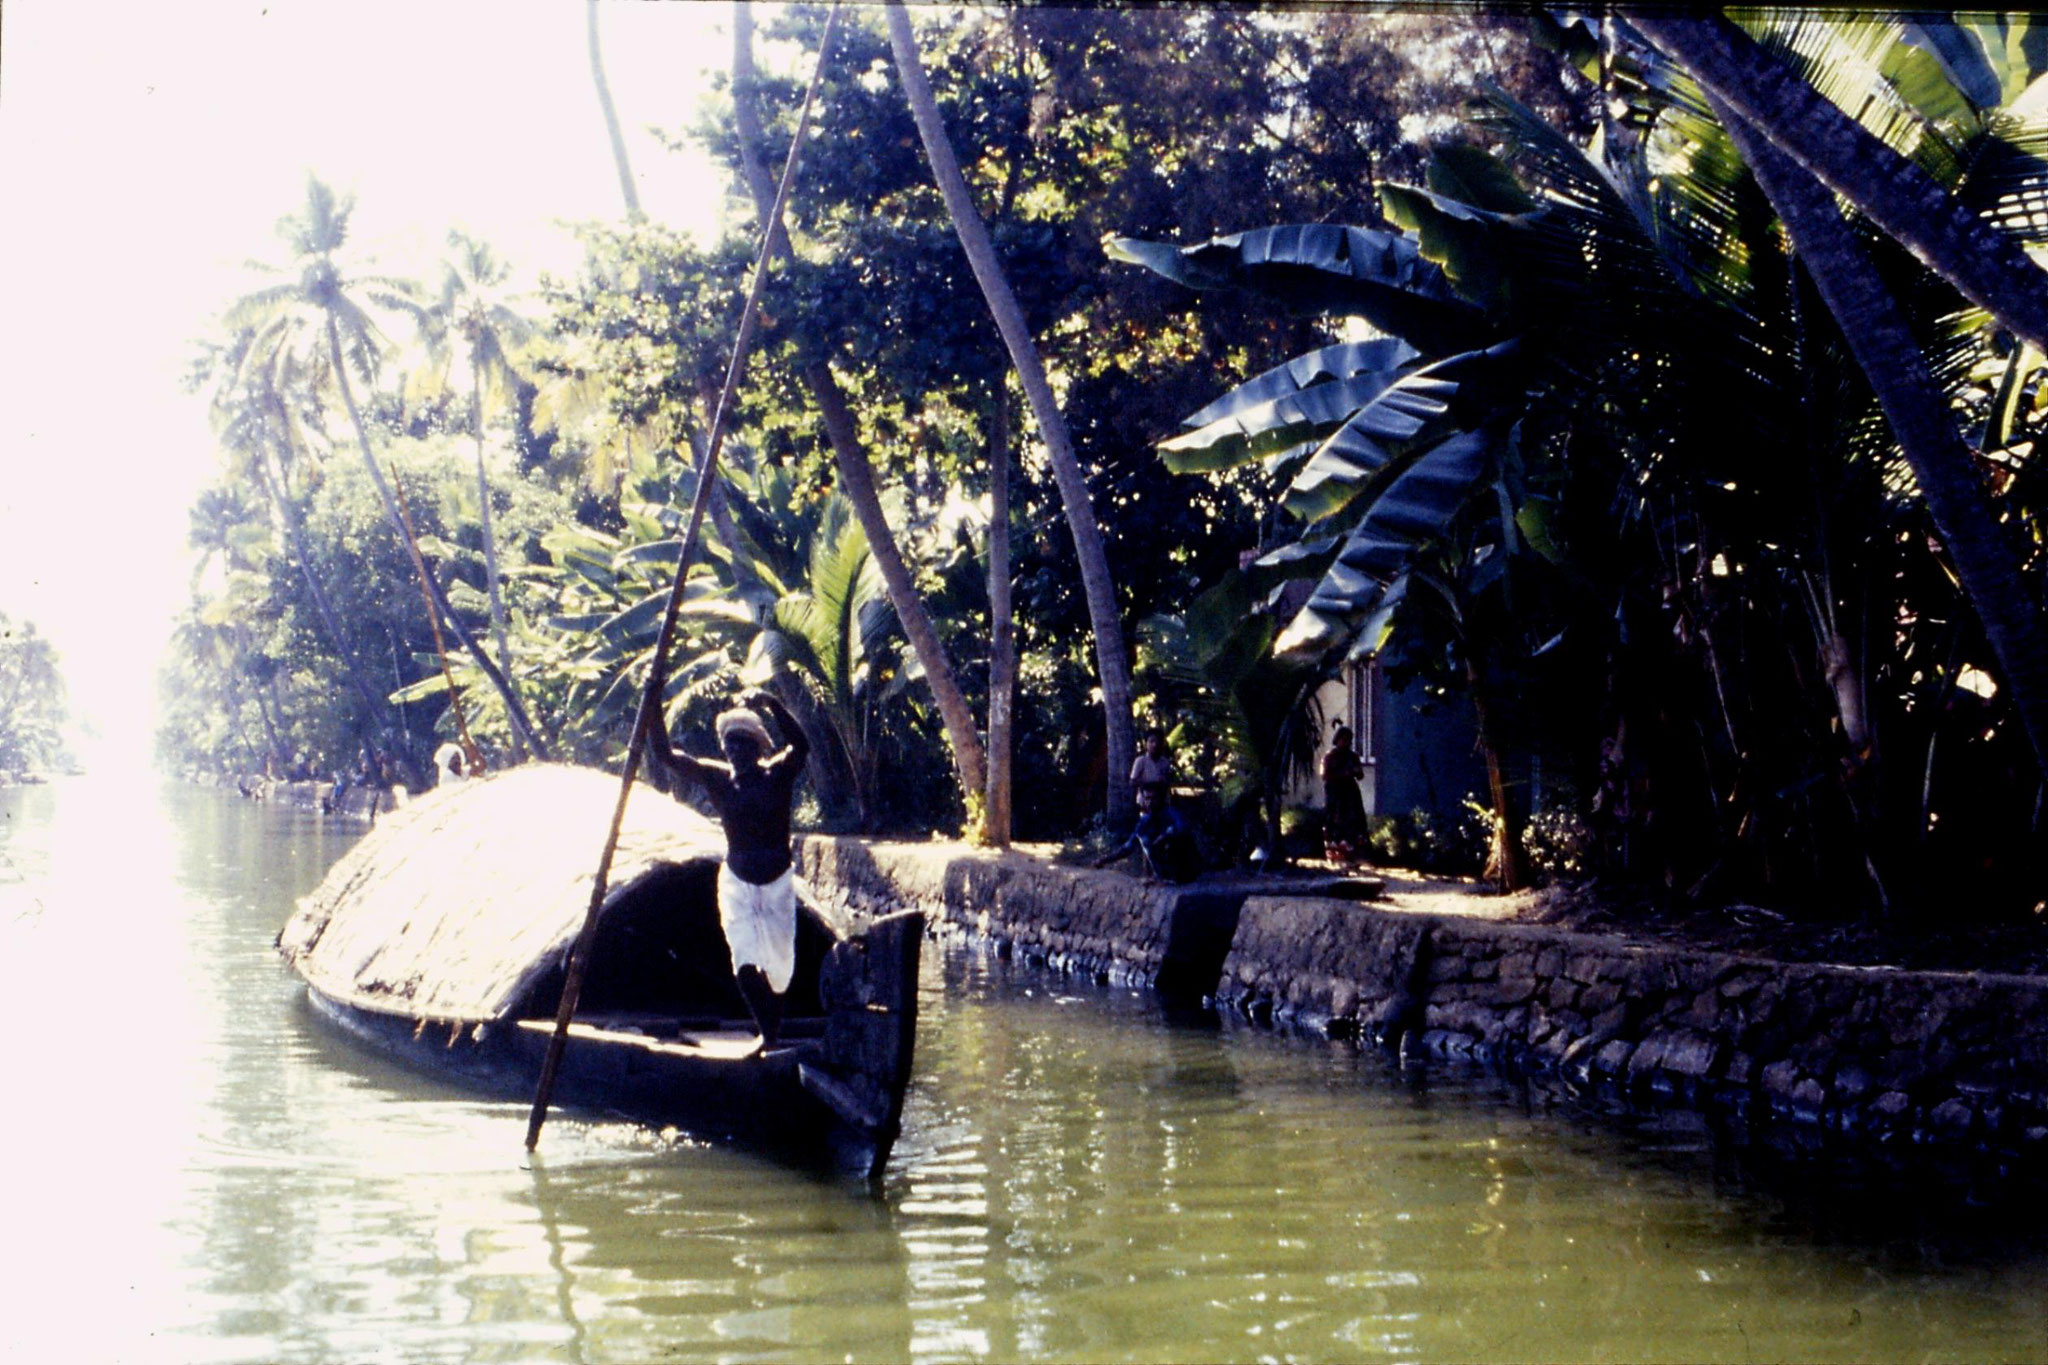 106/2: 23/2/1990 Boat to Alleppey - covered low boat poled by 2 men